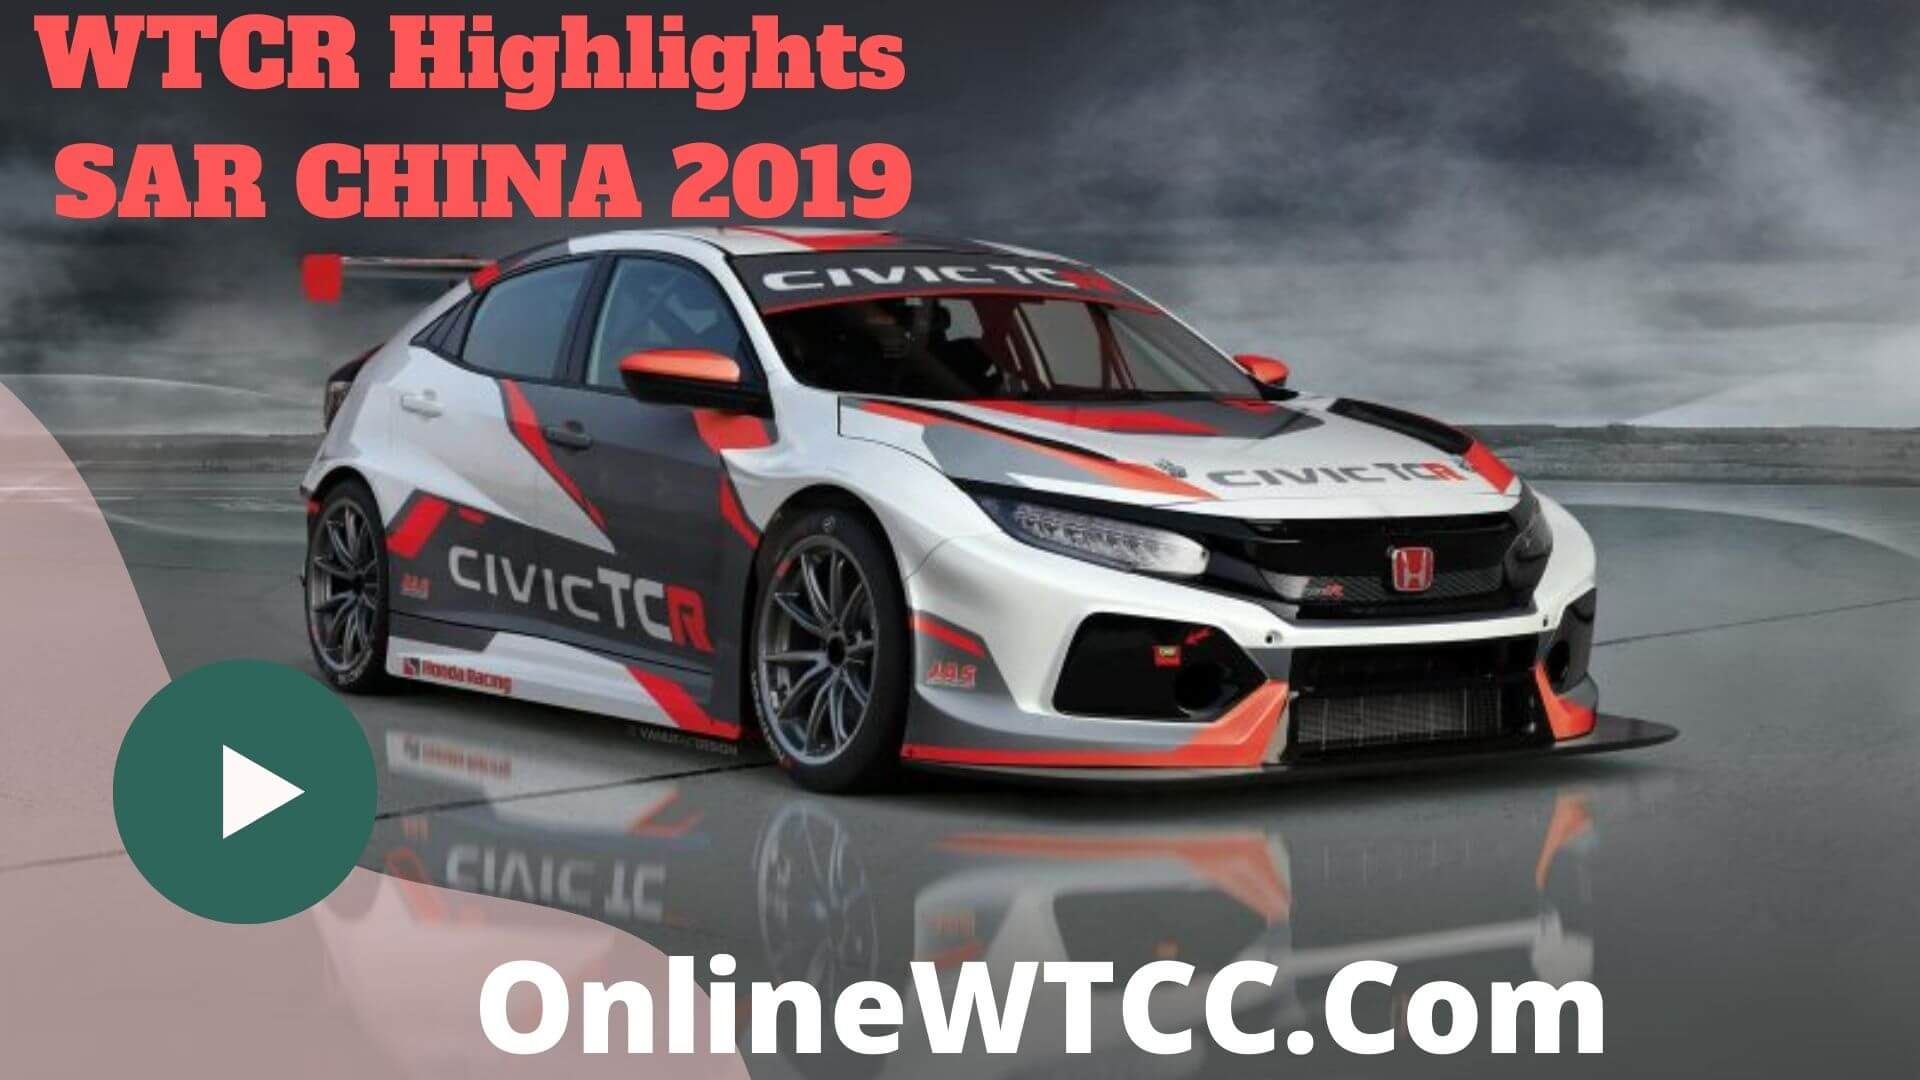 SAR China WTCR Highlights 2019